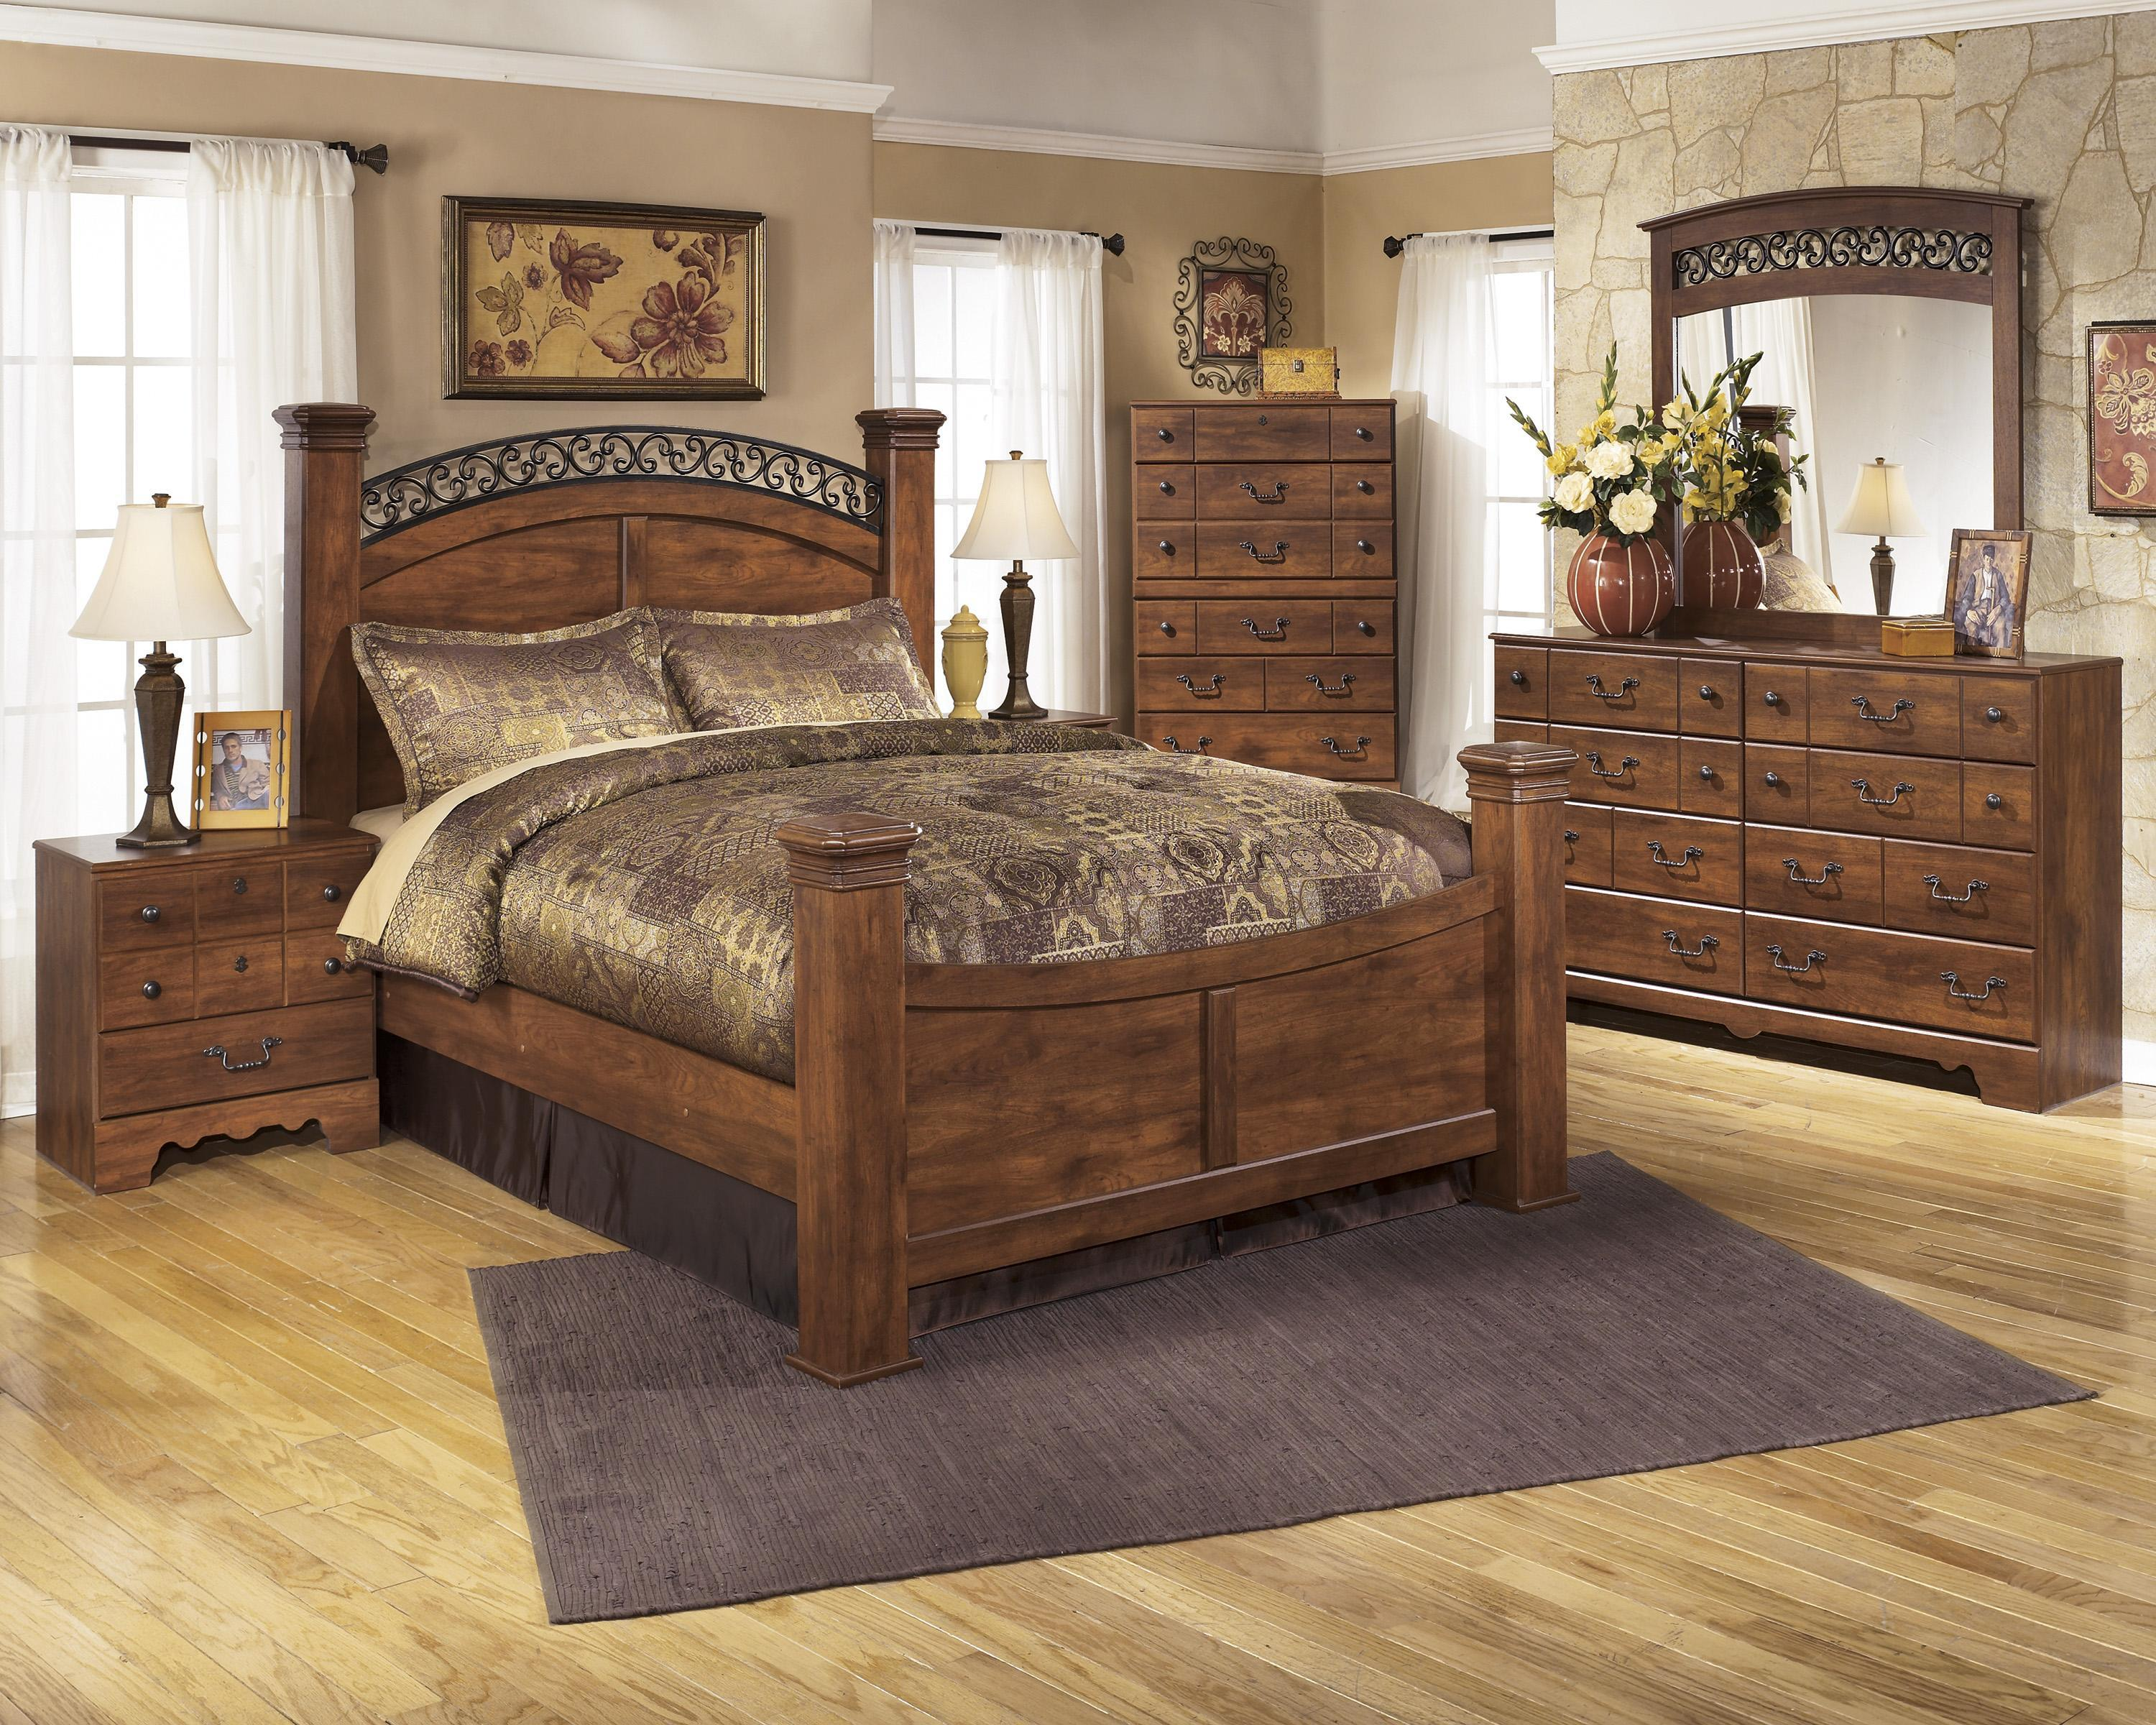 Signature Design By Ashley Timberline B258 Q Bedroom Group 3 No Chest Queen Bedroom Group 4pc